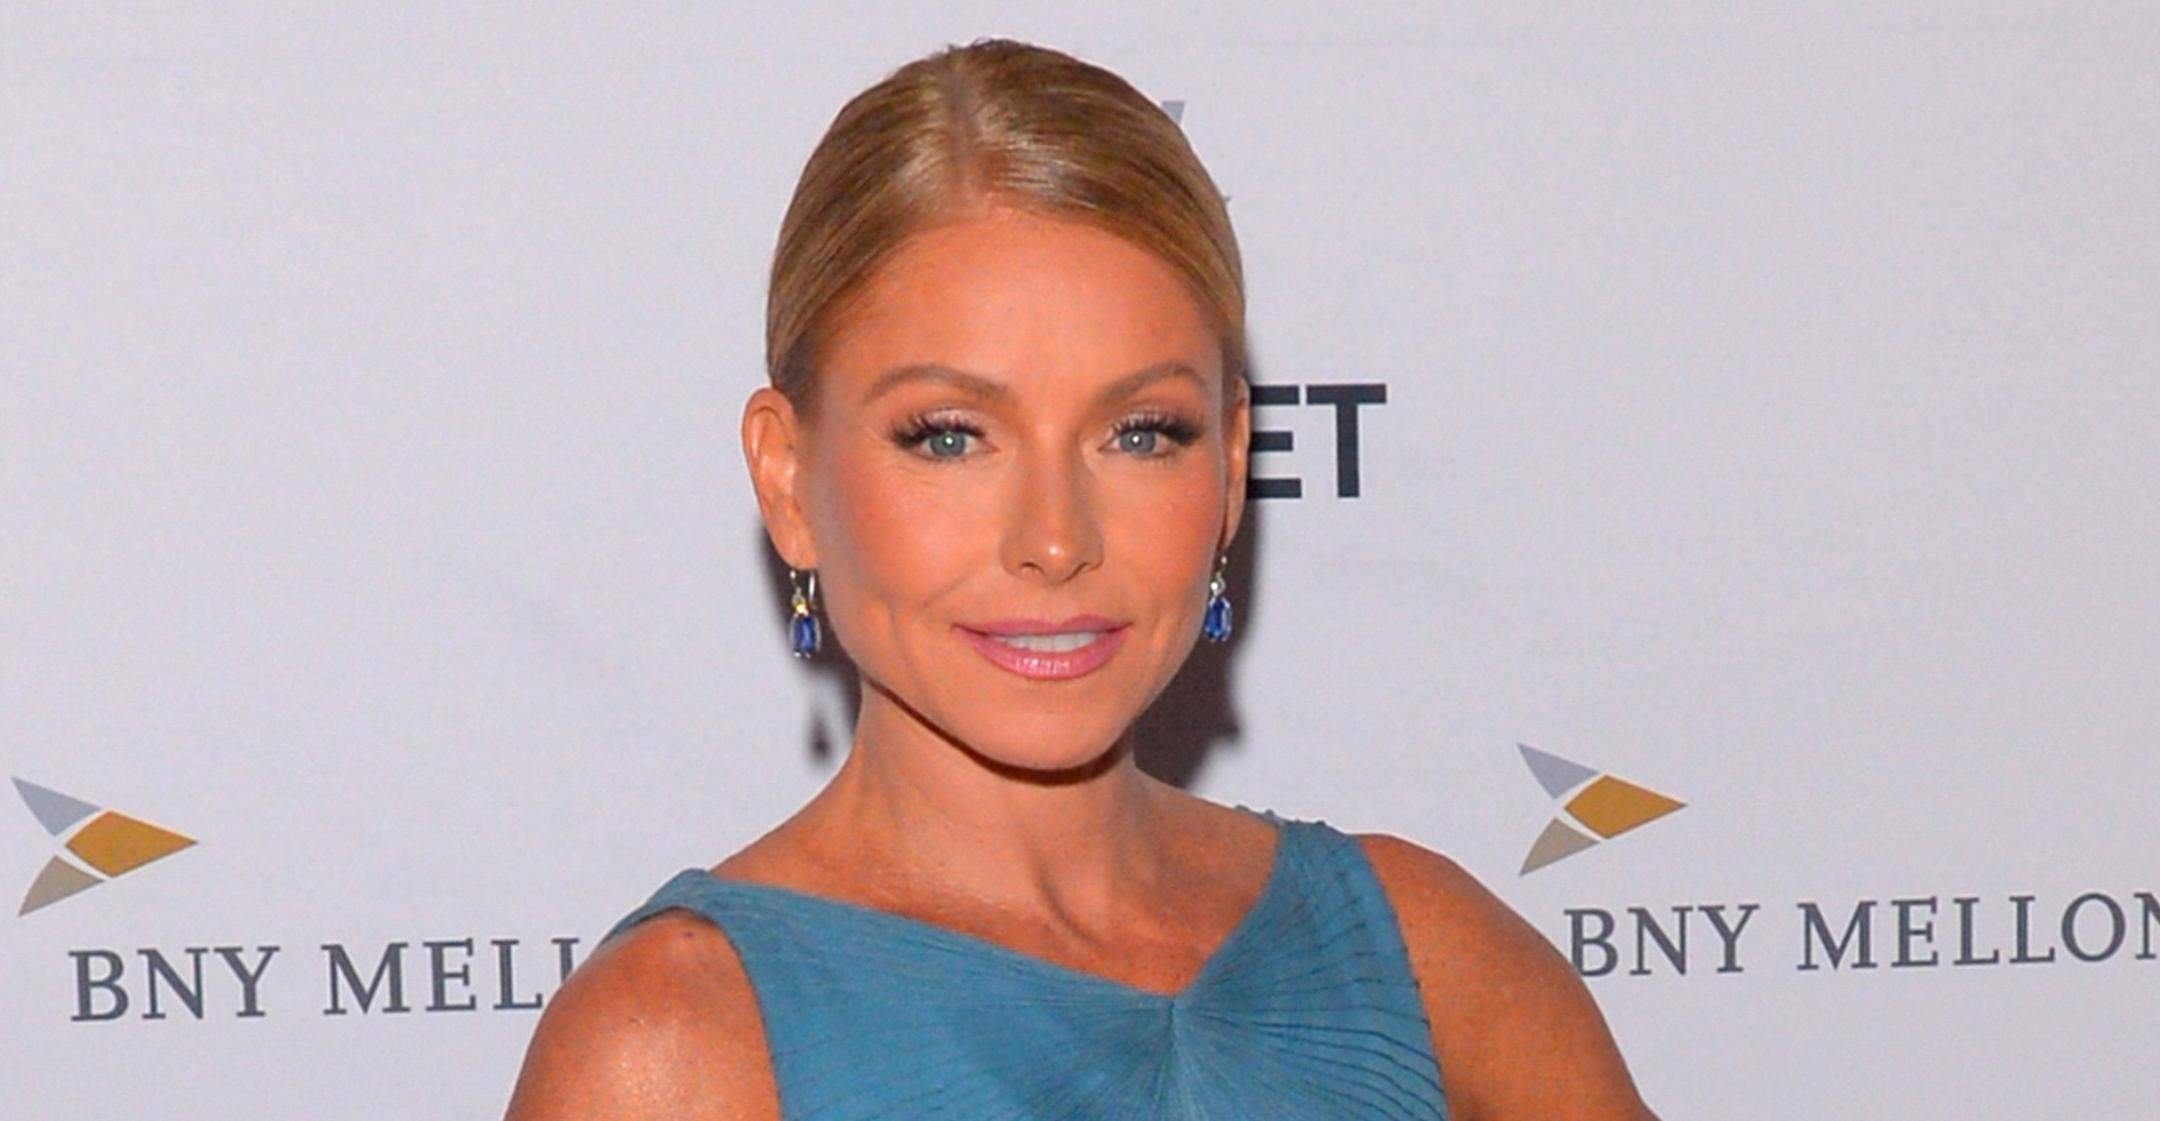 kelly ripa experiences with inequality in the workplace encourages women listen to intuition